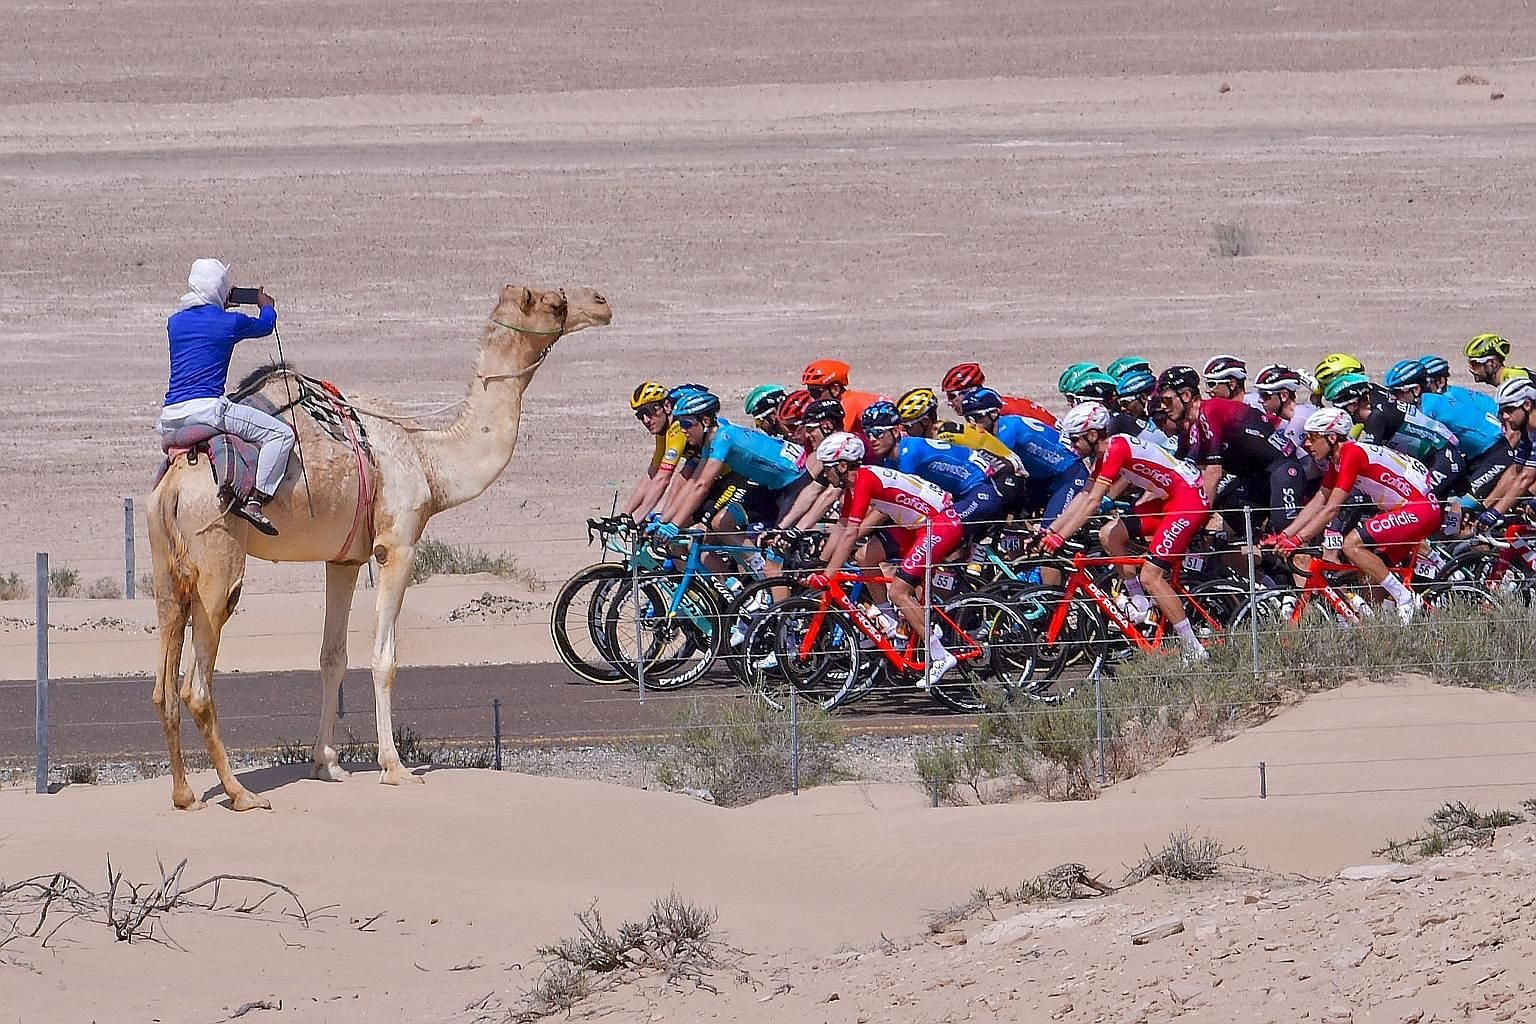 The pack rides during the third stage of the seven-stage UAE Tour from al-Marmoom to Jebel Hafeet on Monday. The last two stages were cancelled on Thursday. PHOTO: AGENCE FRANCE-PRESSE